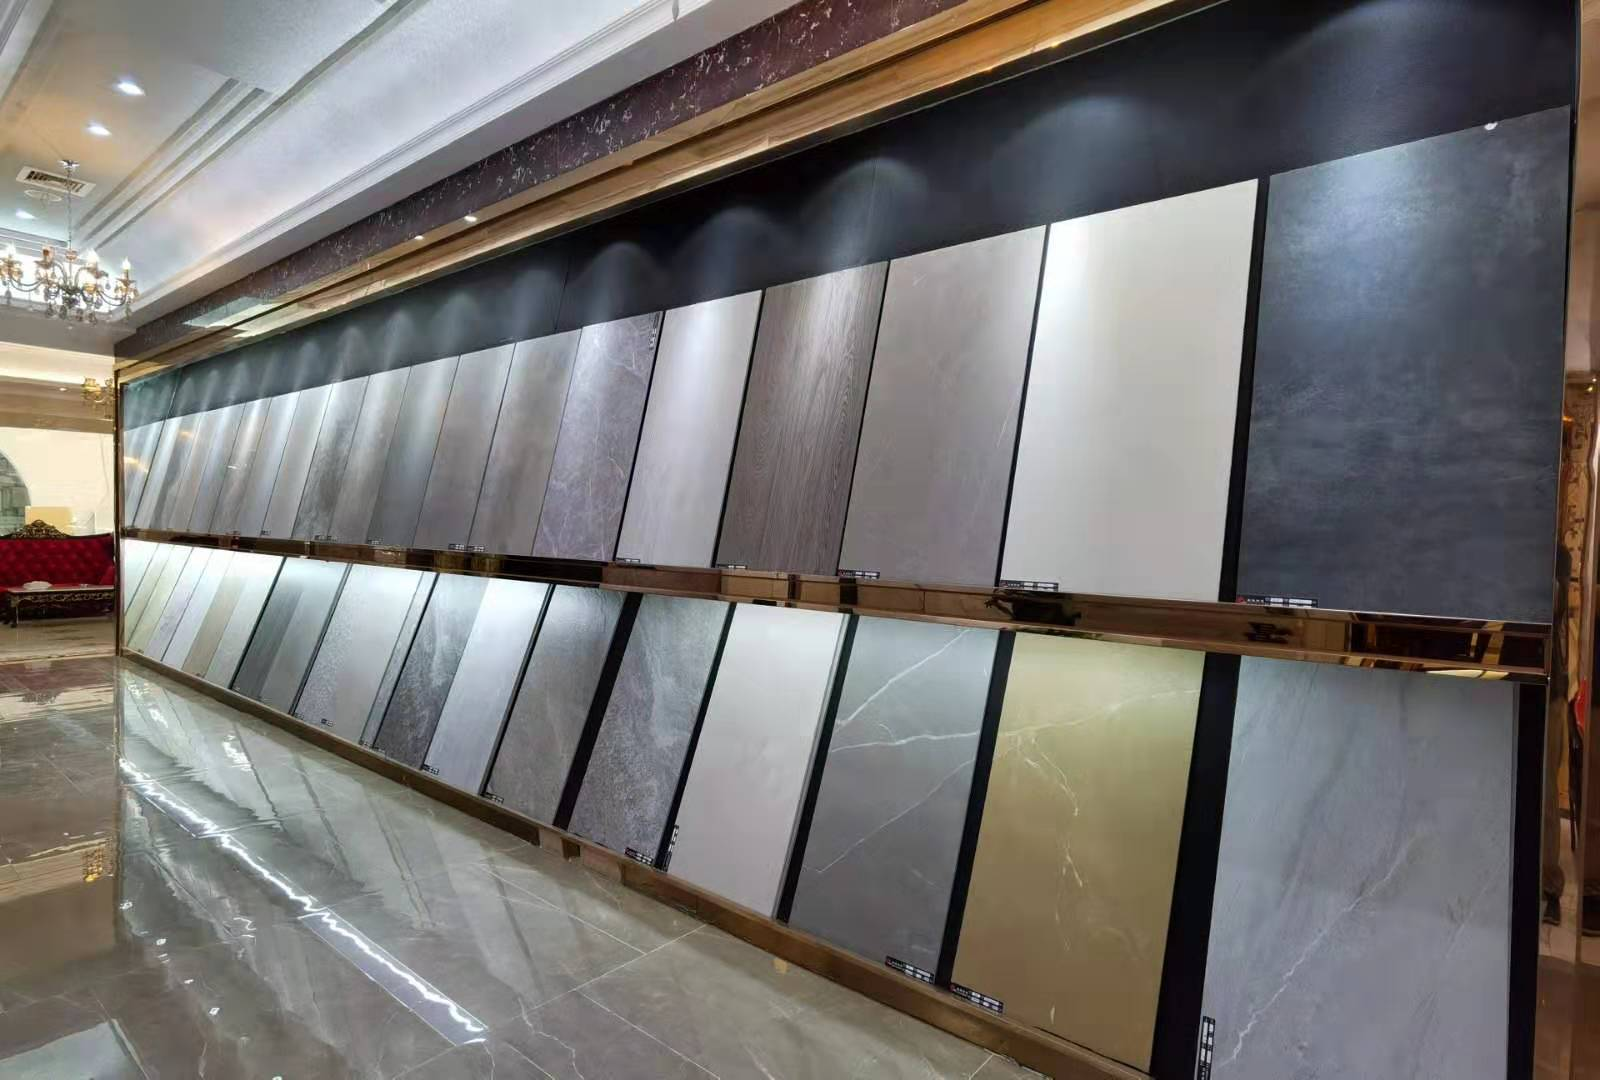 buying tiles from China